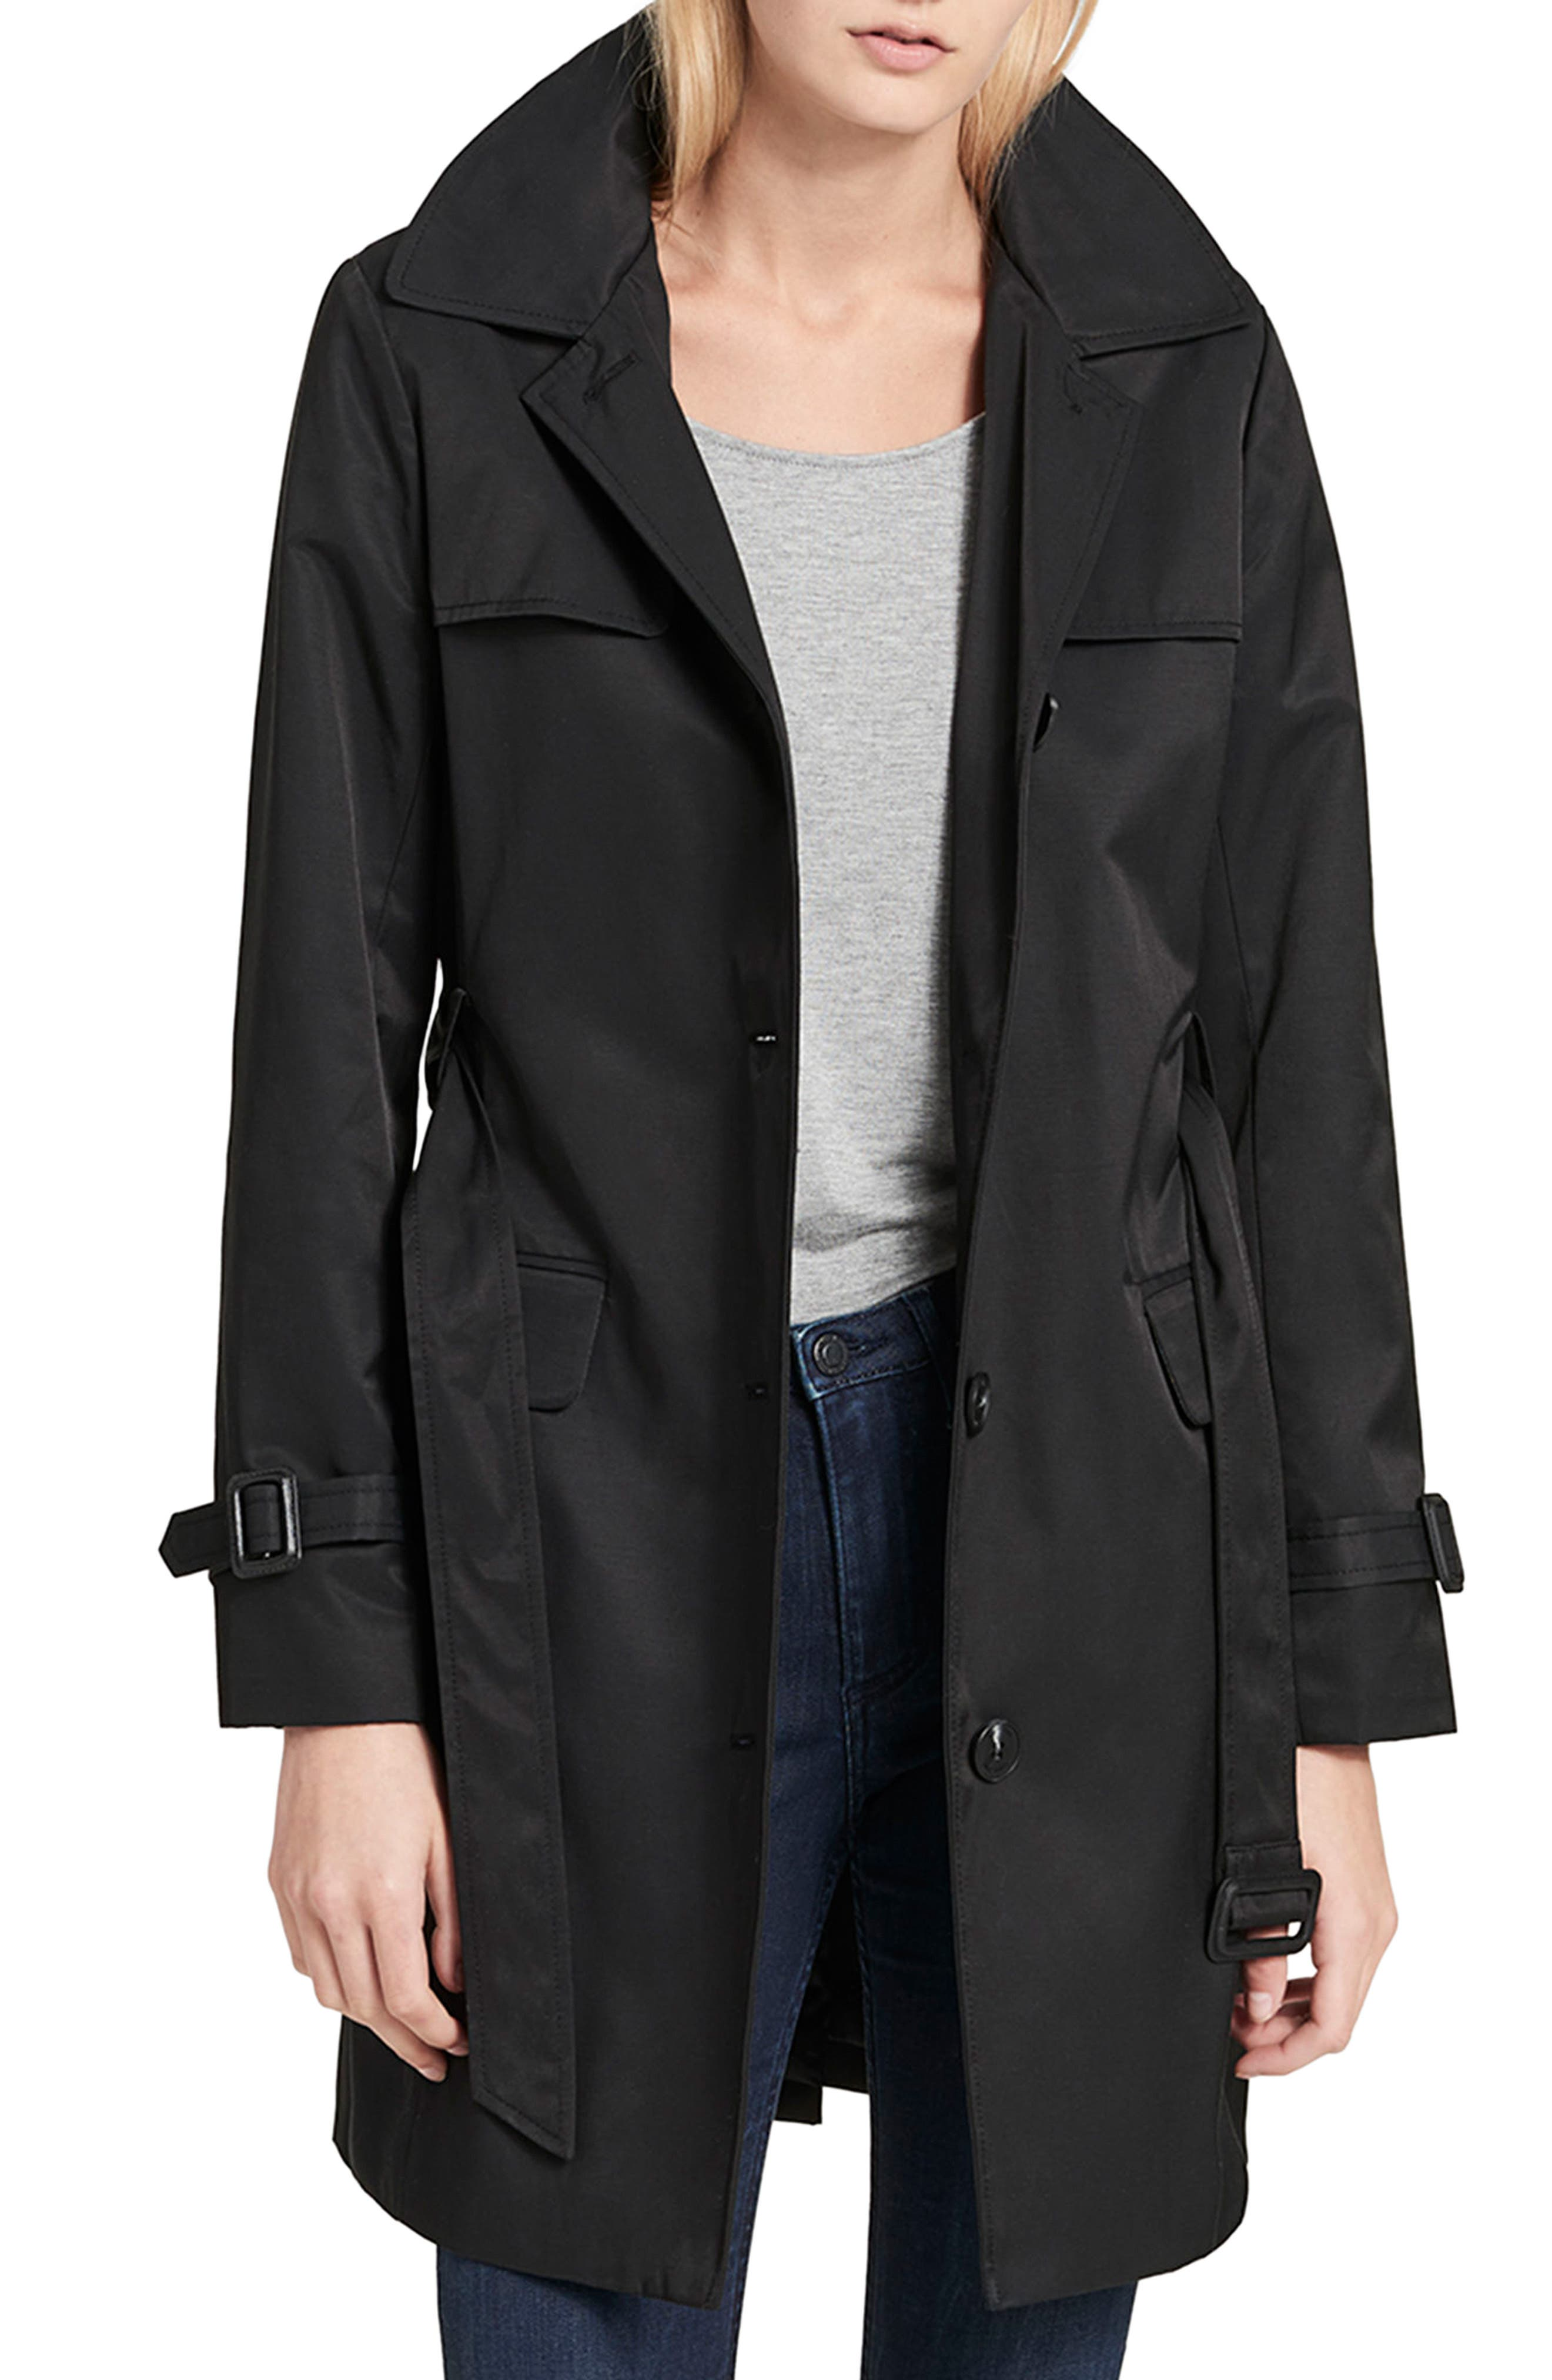 Water Resistant Belted Trench Coat,                             Main thumbnail 1, color,                             001